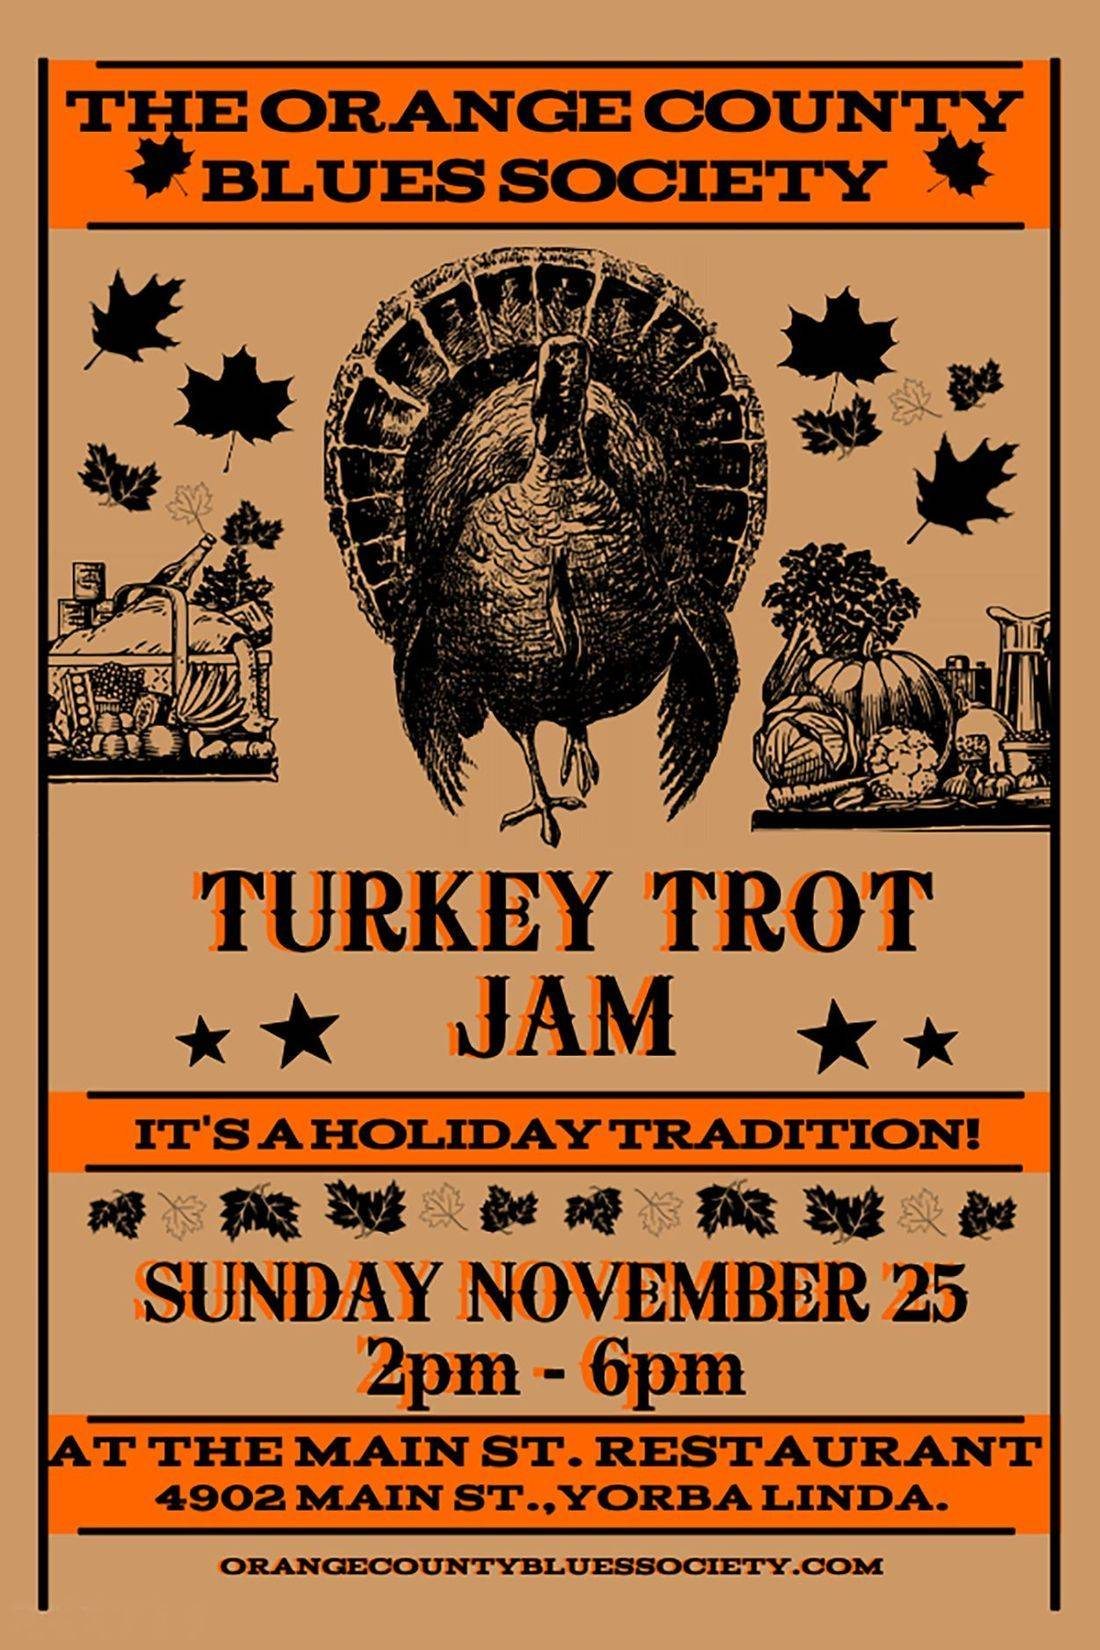 Turkey Trot Jam